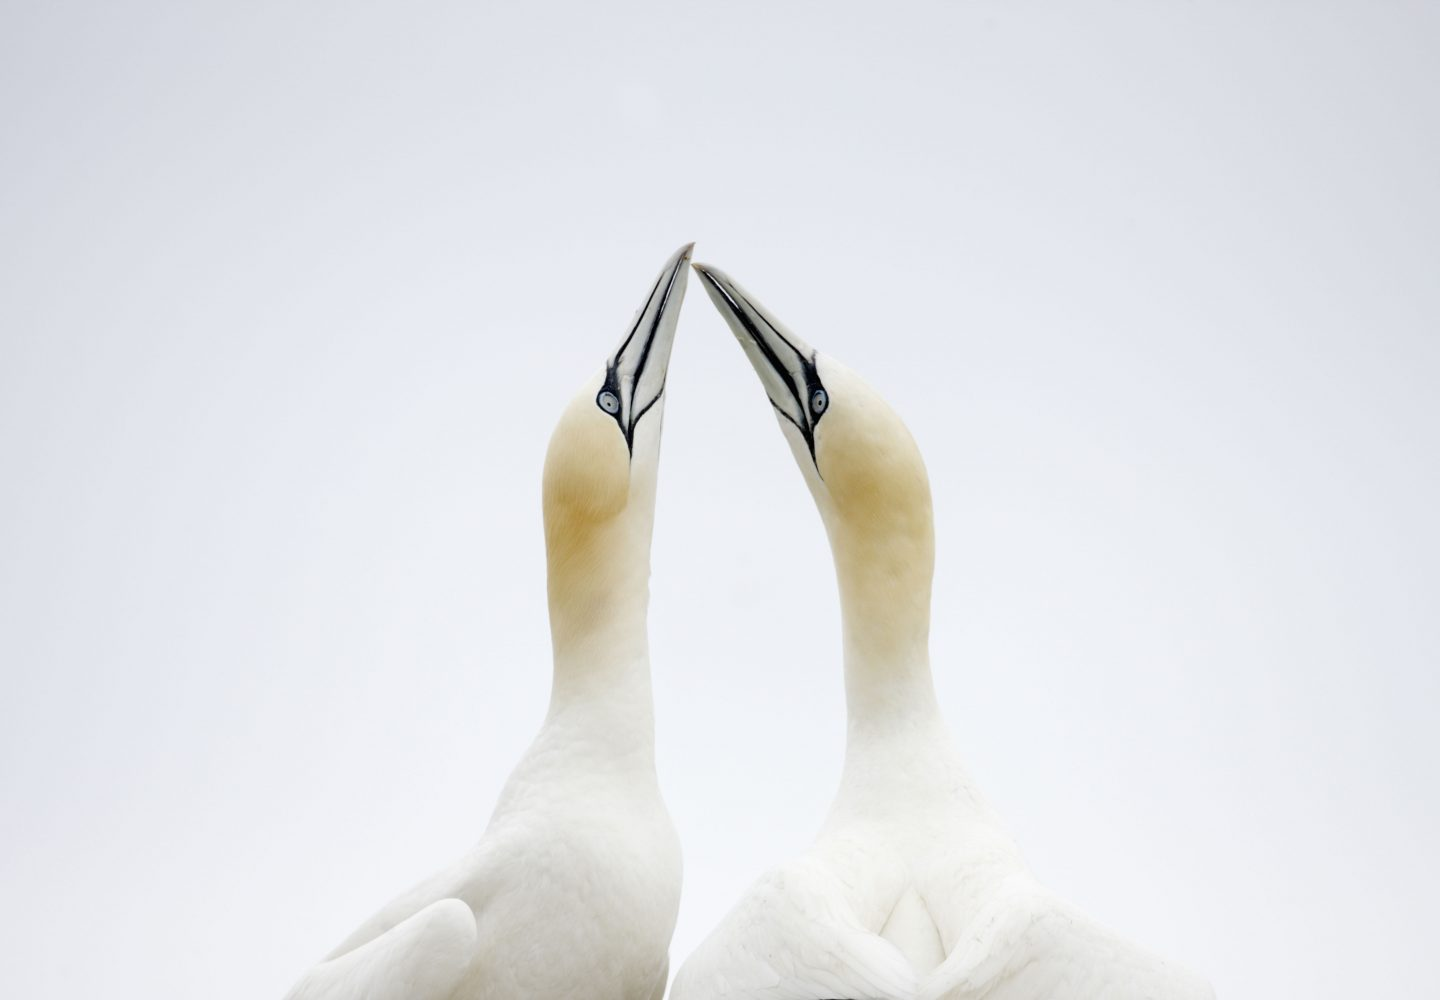 Gannet (Sula / Morus bassanus) courtship, Saltee Islands, County Wexford, Ireland.